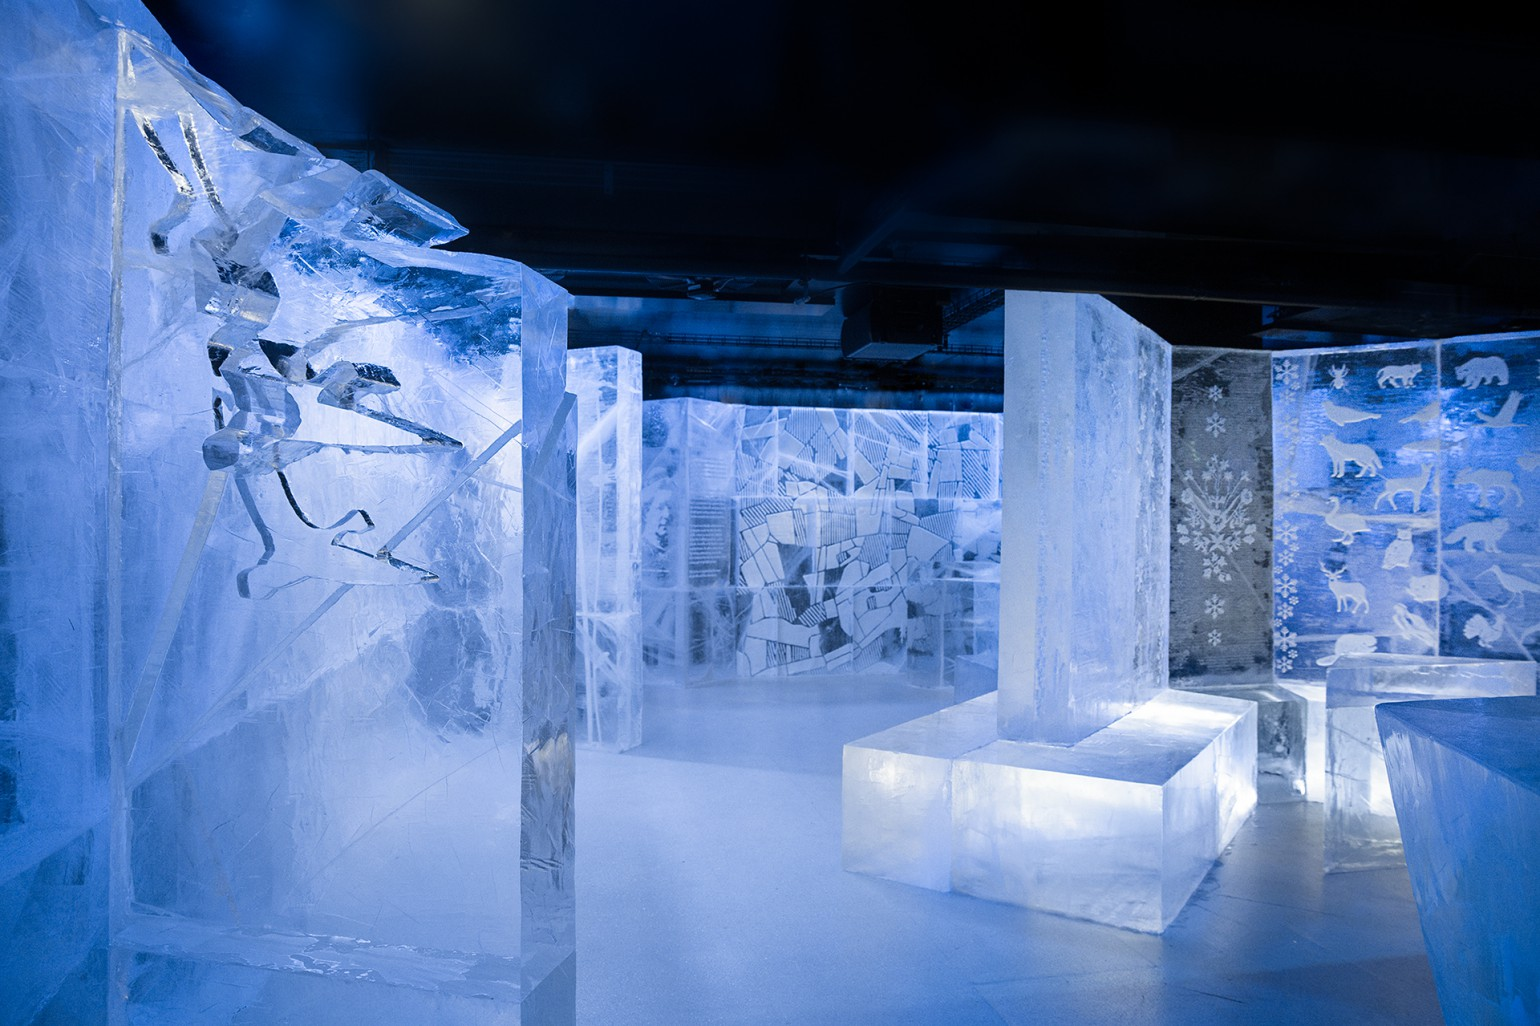 ICEBAR BY ICEHOTEL STOCKHOLM, Nordic C Hotel, Northbound Adventure! Design by: Christian Strömqvist & Kalle Ekeroth